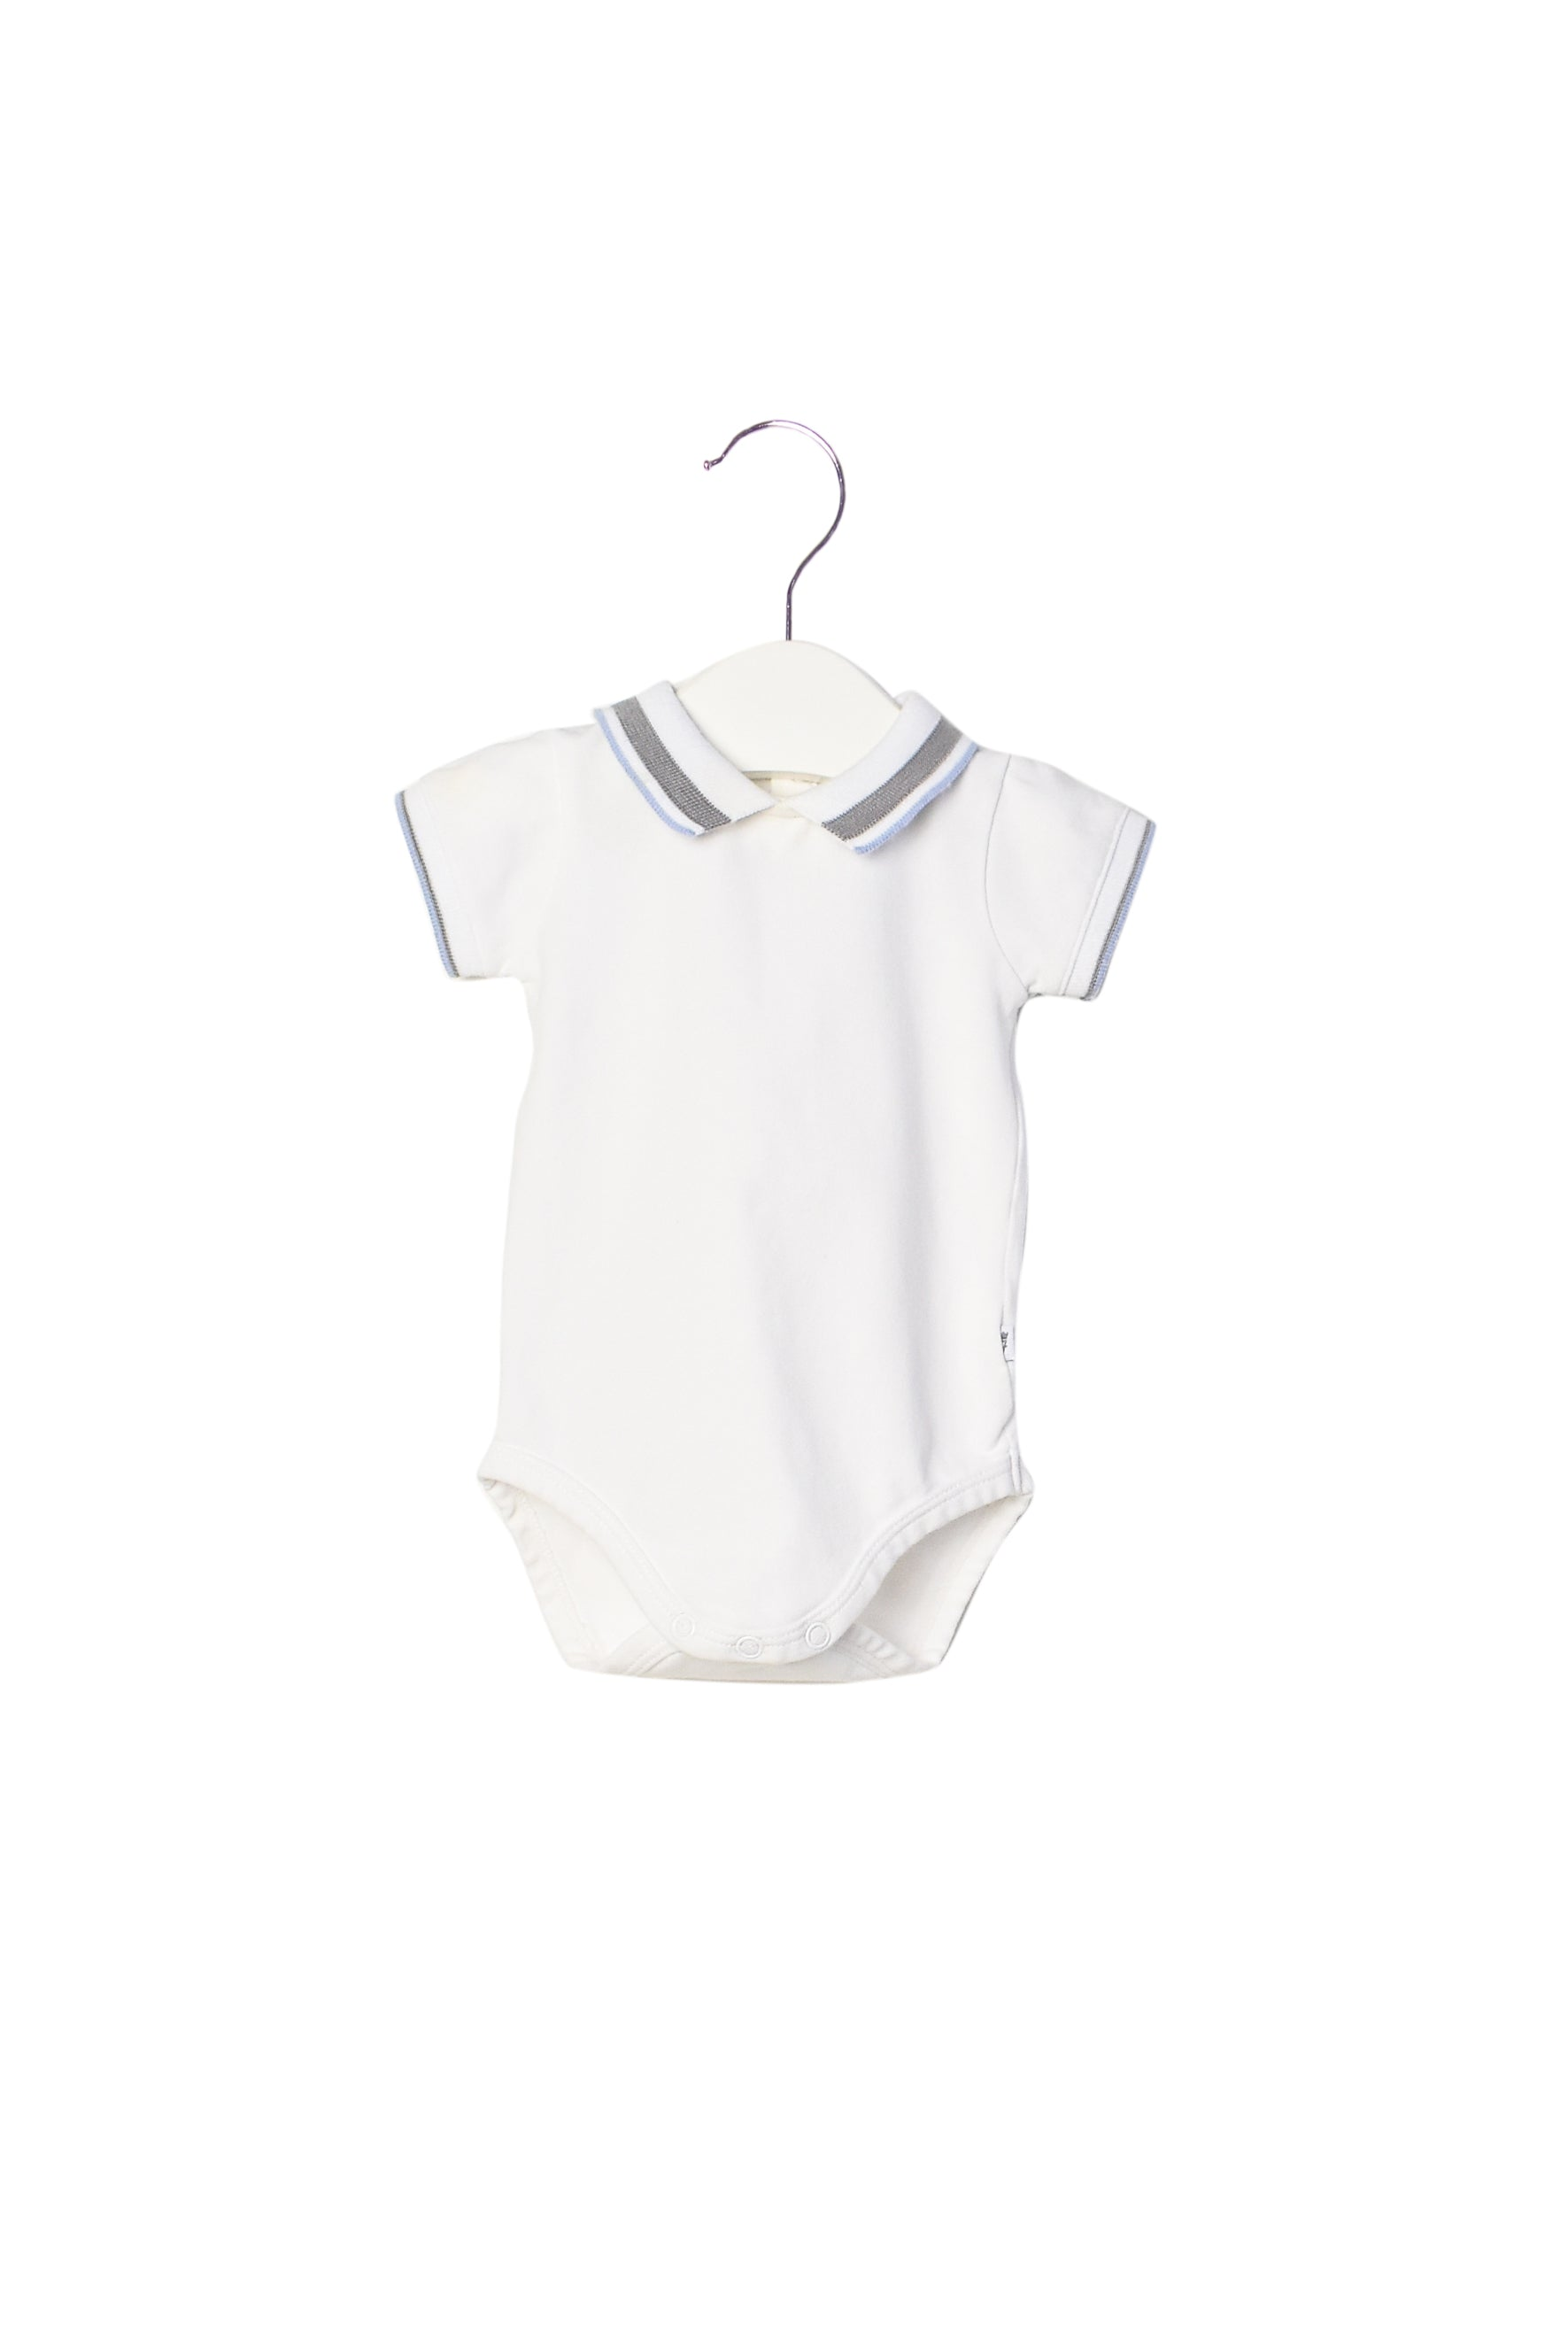 10007721 Jacadi Baby~ Bodysuit 3M at Retykle